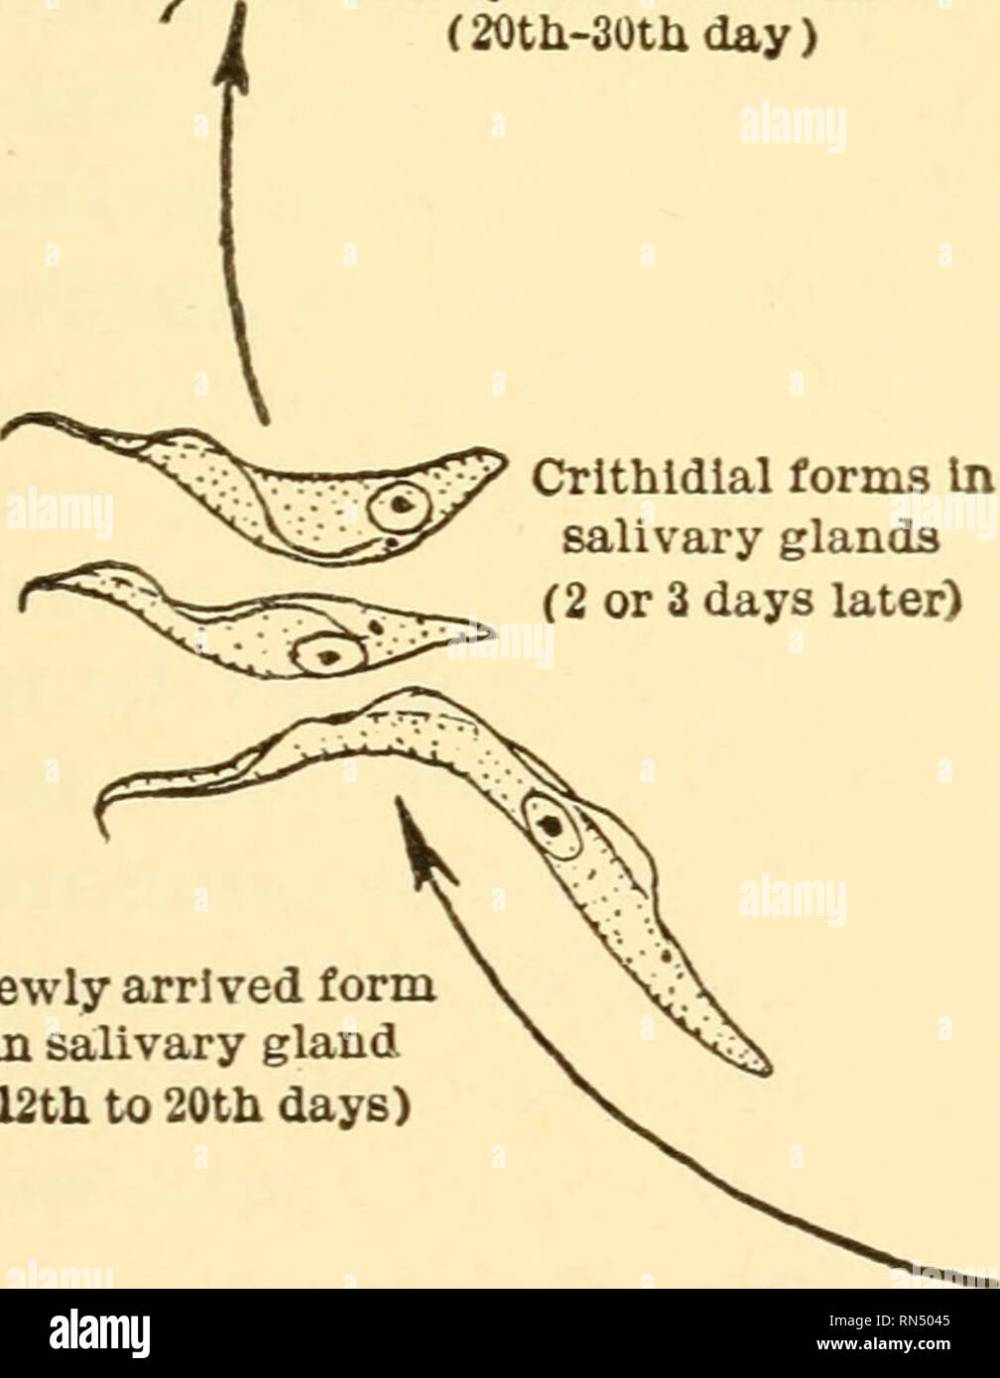 medium resolution of tsetse fly transmission by bite of tsetse fly orms in salivary glands ready for re infection 20th 30thday crithldlal forms in salivary glands 2 or 3 days